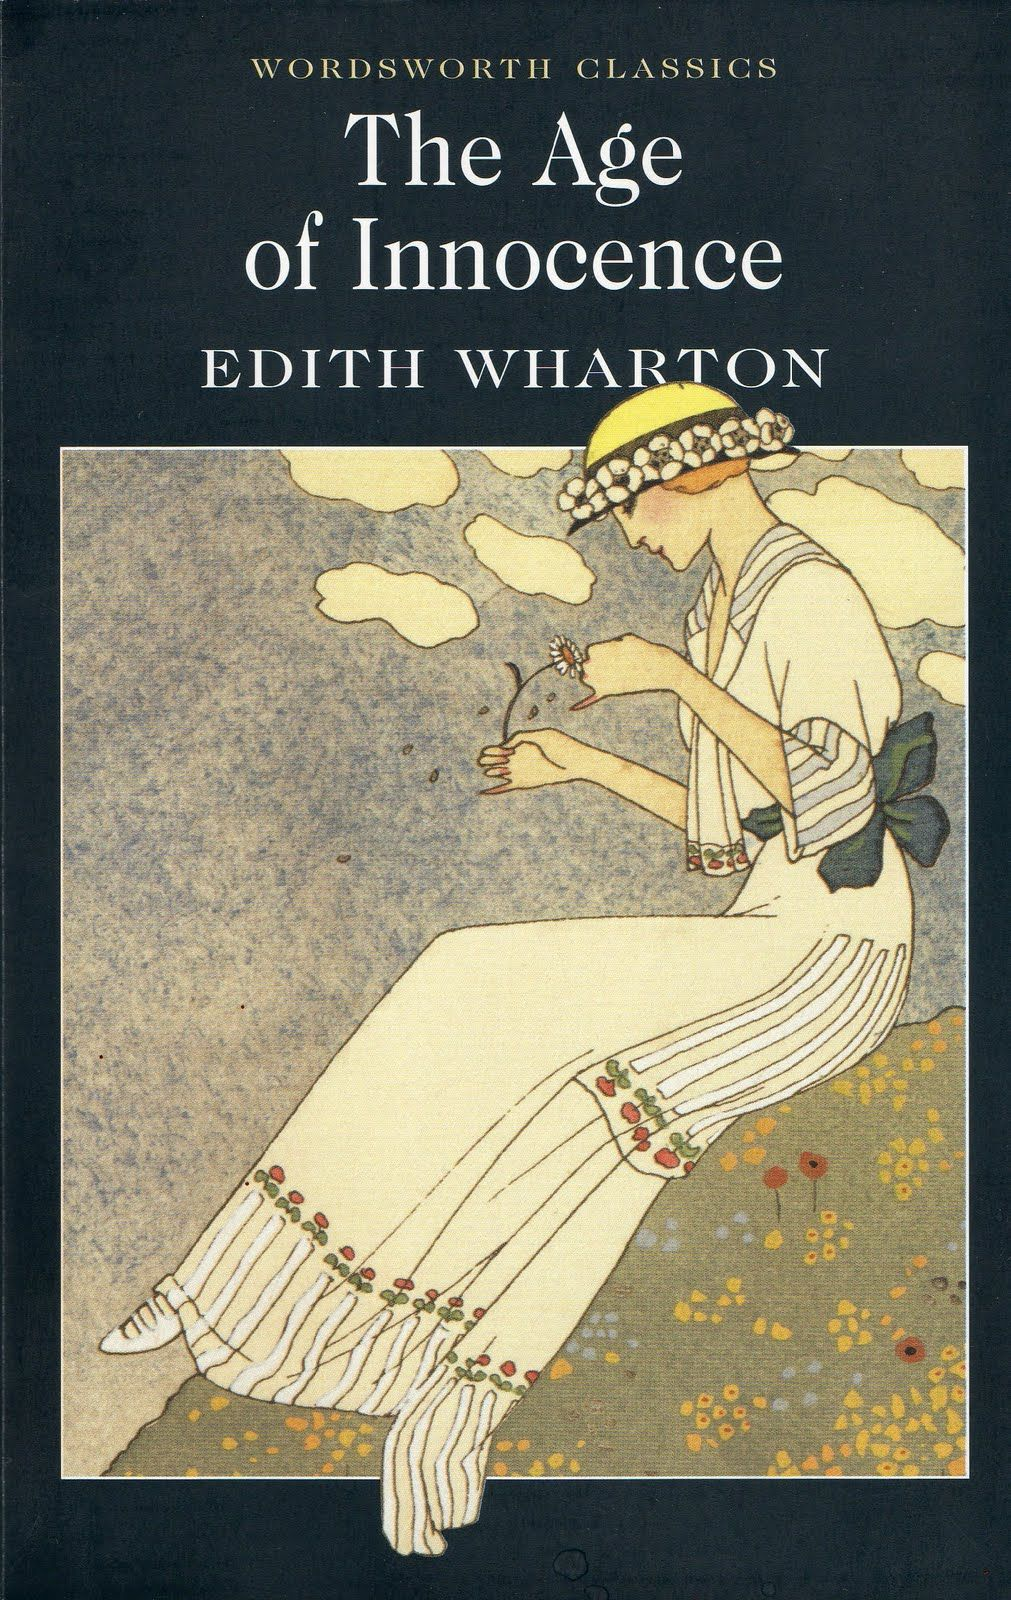 a comparison of age of innocence by edith wharton and poor things by alasdair gray When edith wharton published the age of innocence in 1920, she was writing of an age from her youth, one that had strict rules of conduct, one wharton brings old new york to life in this book -- opulent, beautiful, cultured, yet empty and kind of boring it is where the real thing was never said or.